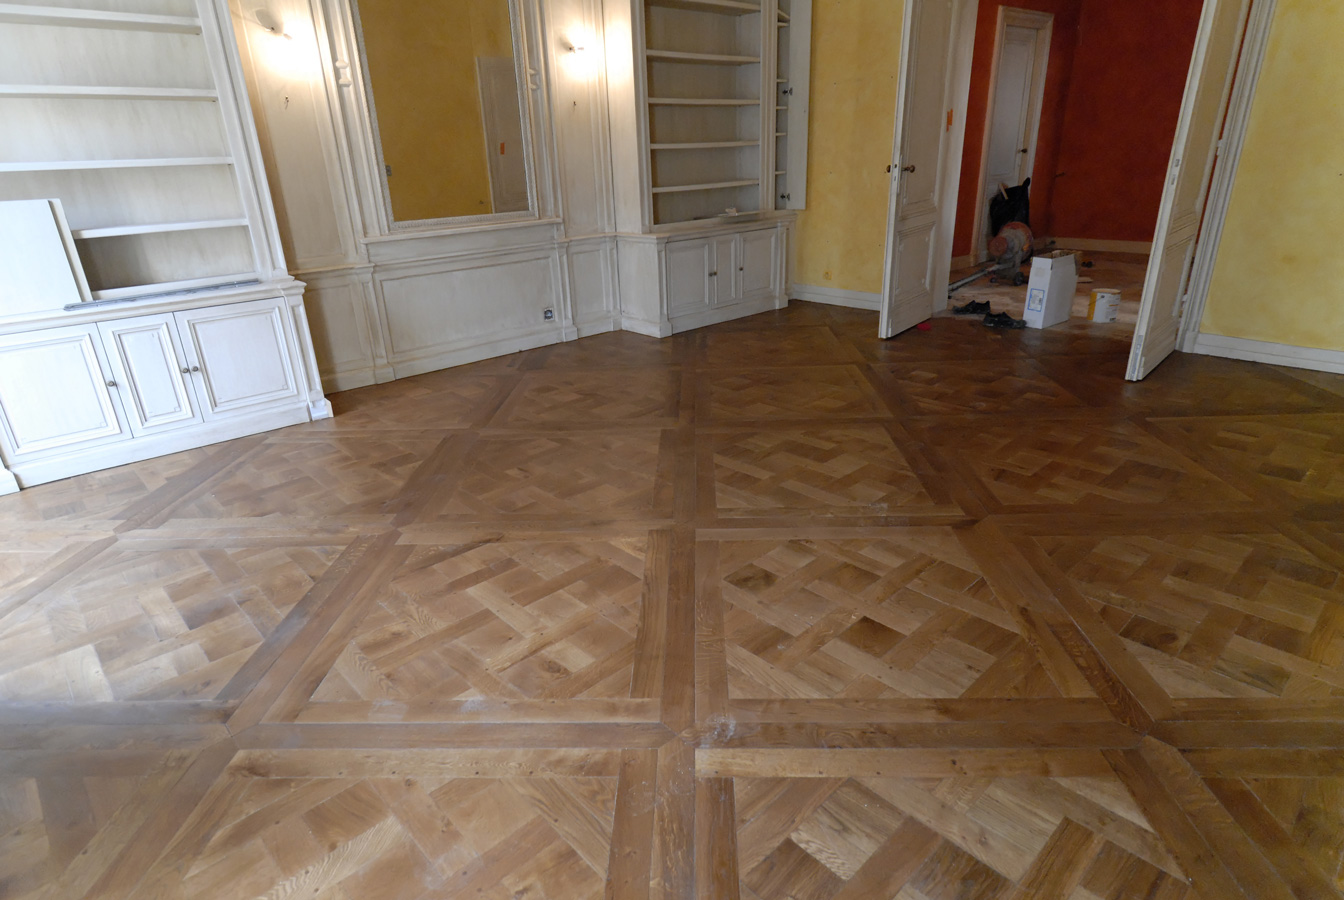 autre vue g n rale parquet panneaux versailles et parquet foug re bordeaux n 864. Black Bedroom Furniture Sets. Home Design Ideas